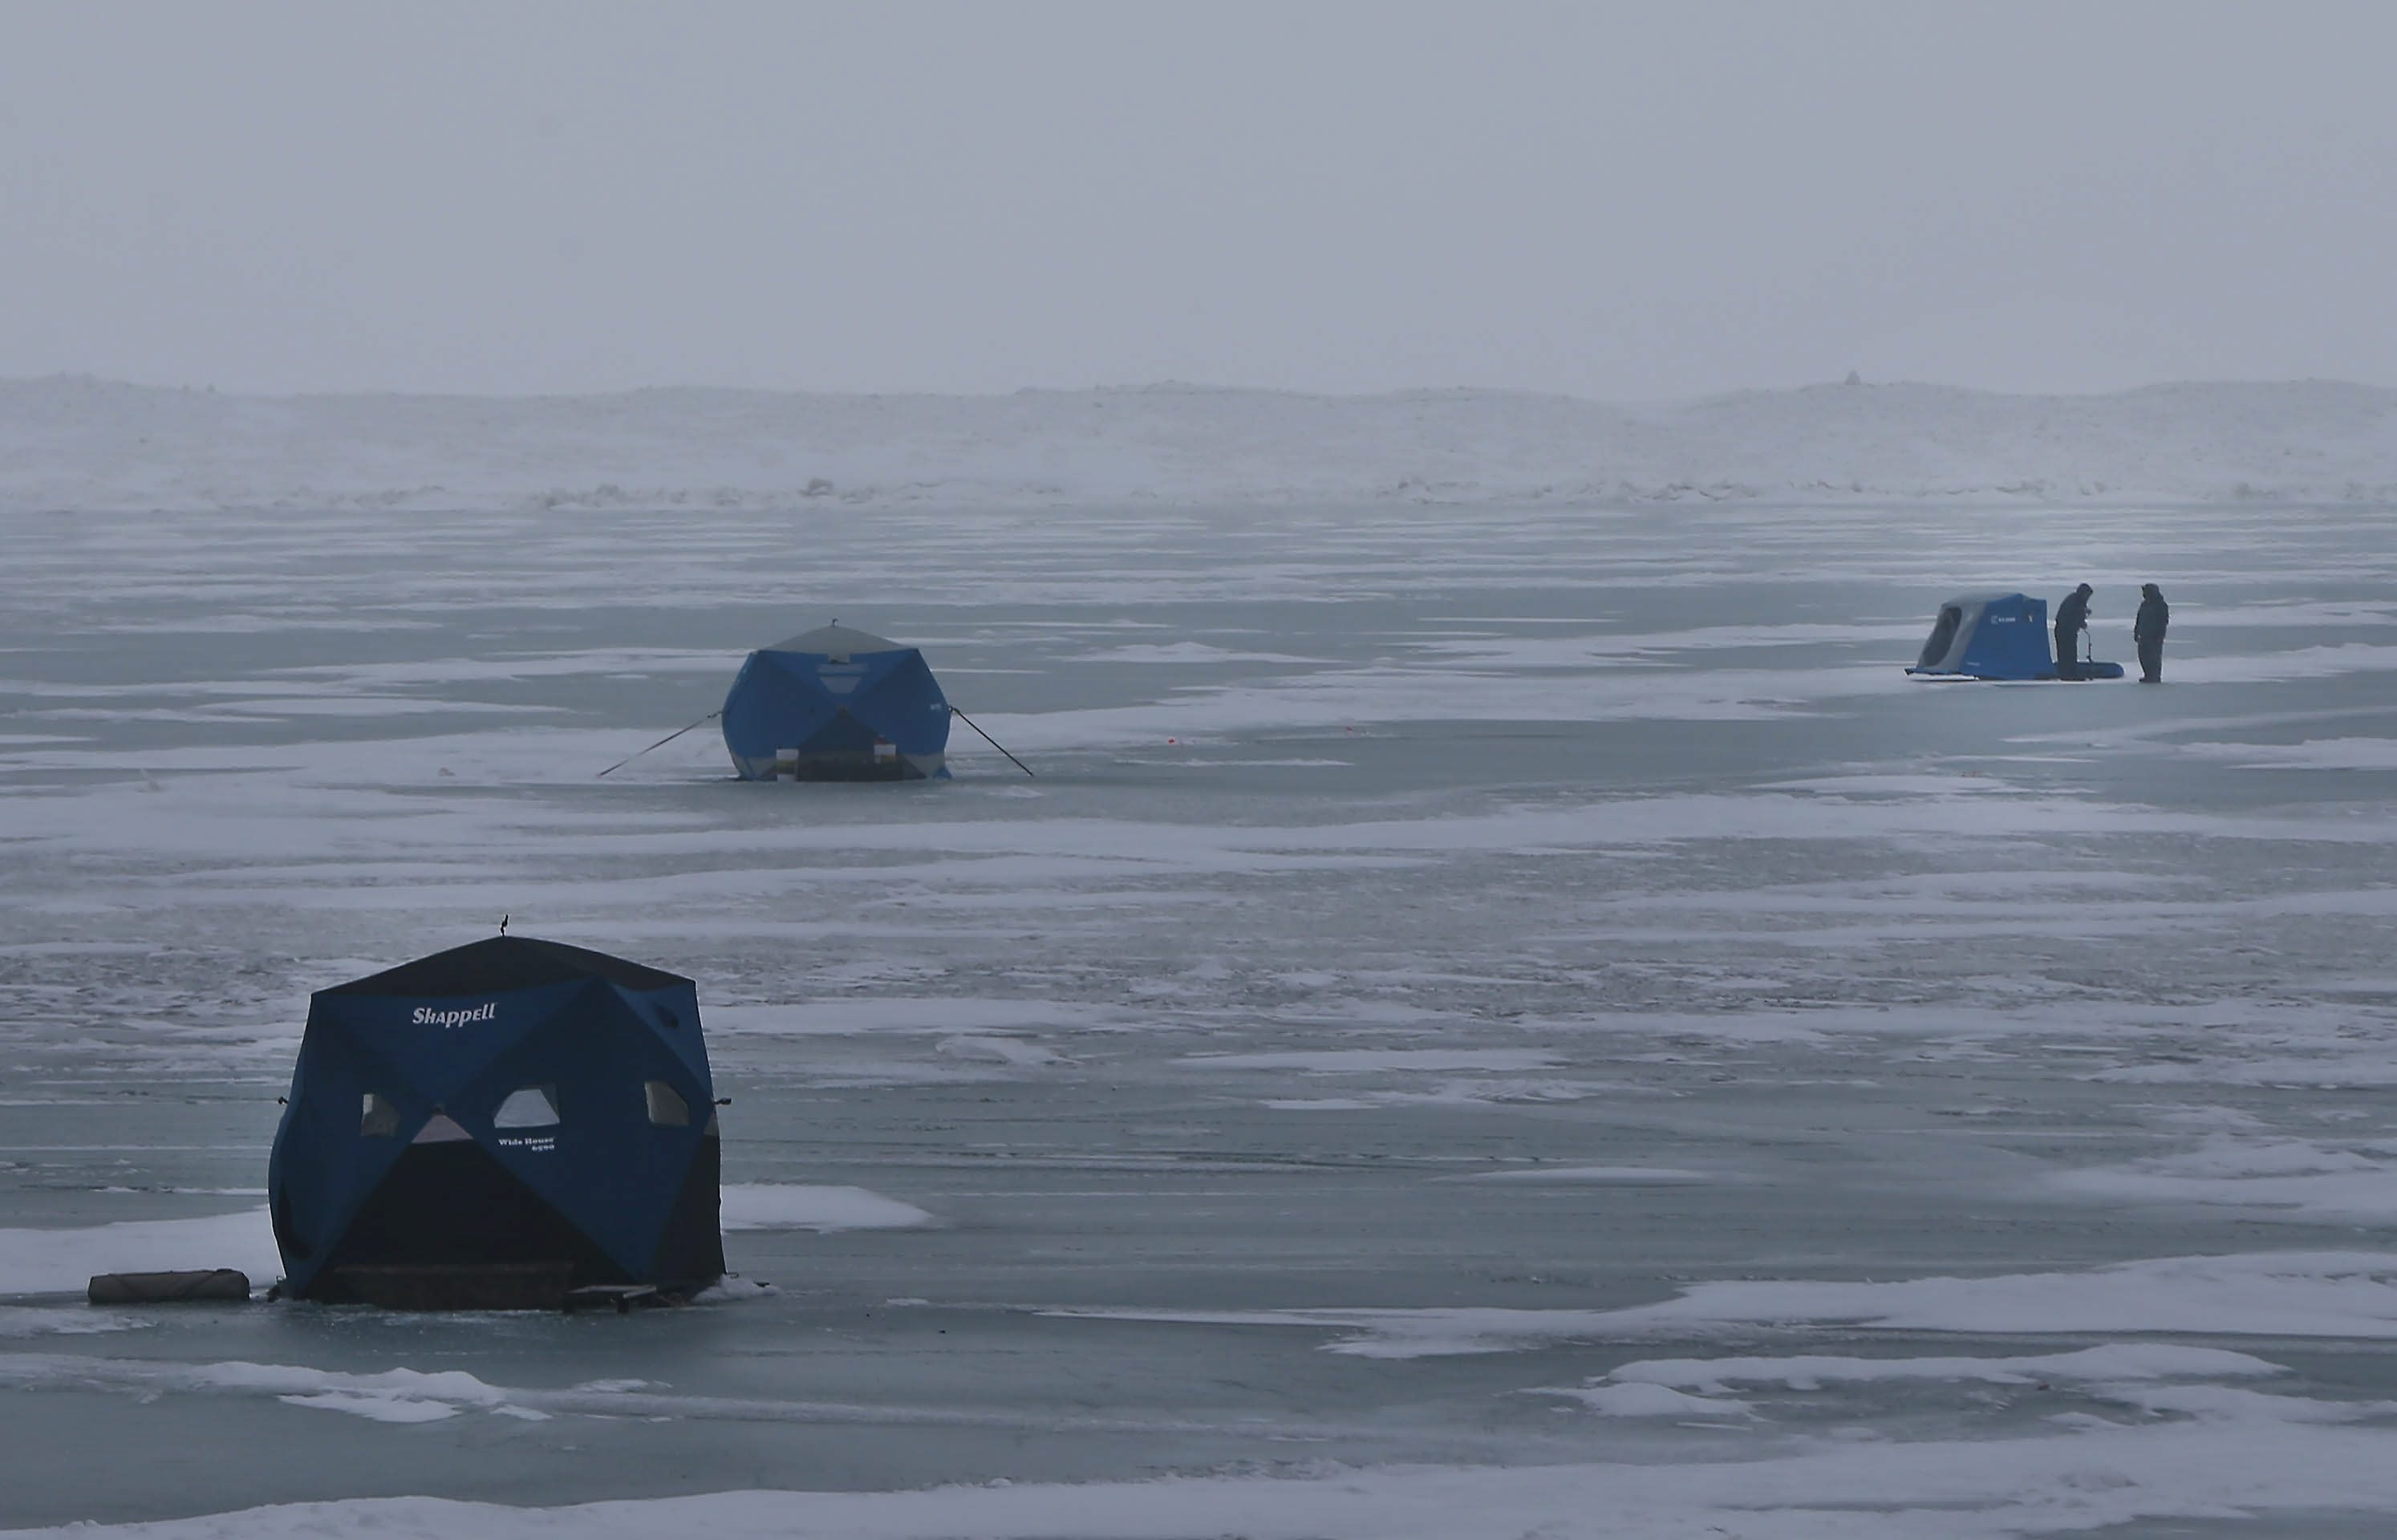 Ice fishermen brave the winds in the Small Boat Harbor in Buffalo on Saturday, when temperatures hovered in the upper 20s.